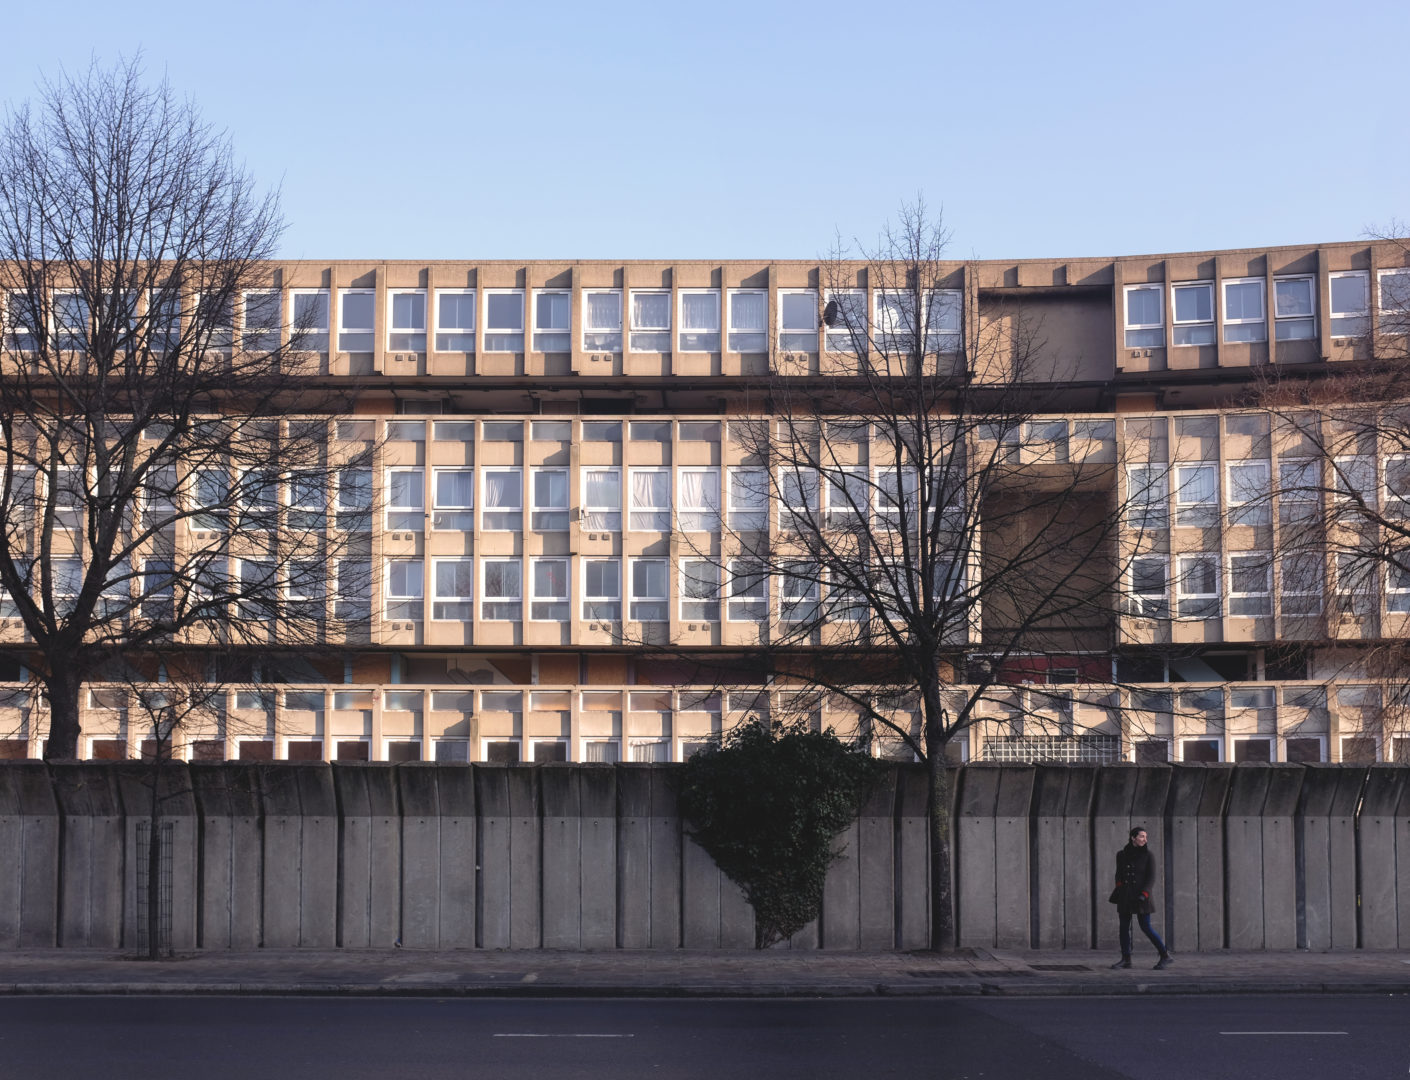 Robin-Hood-Gardens-London-Brutalism-Architecture-Facade